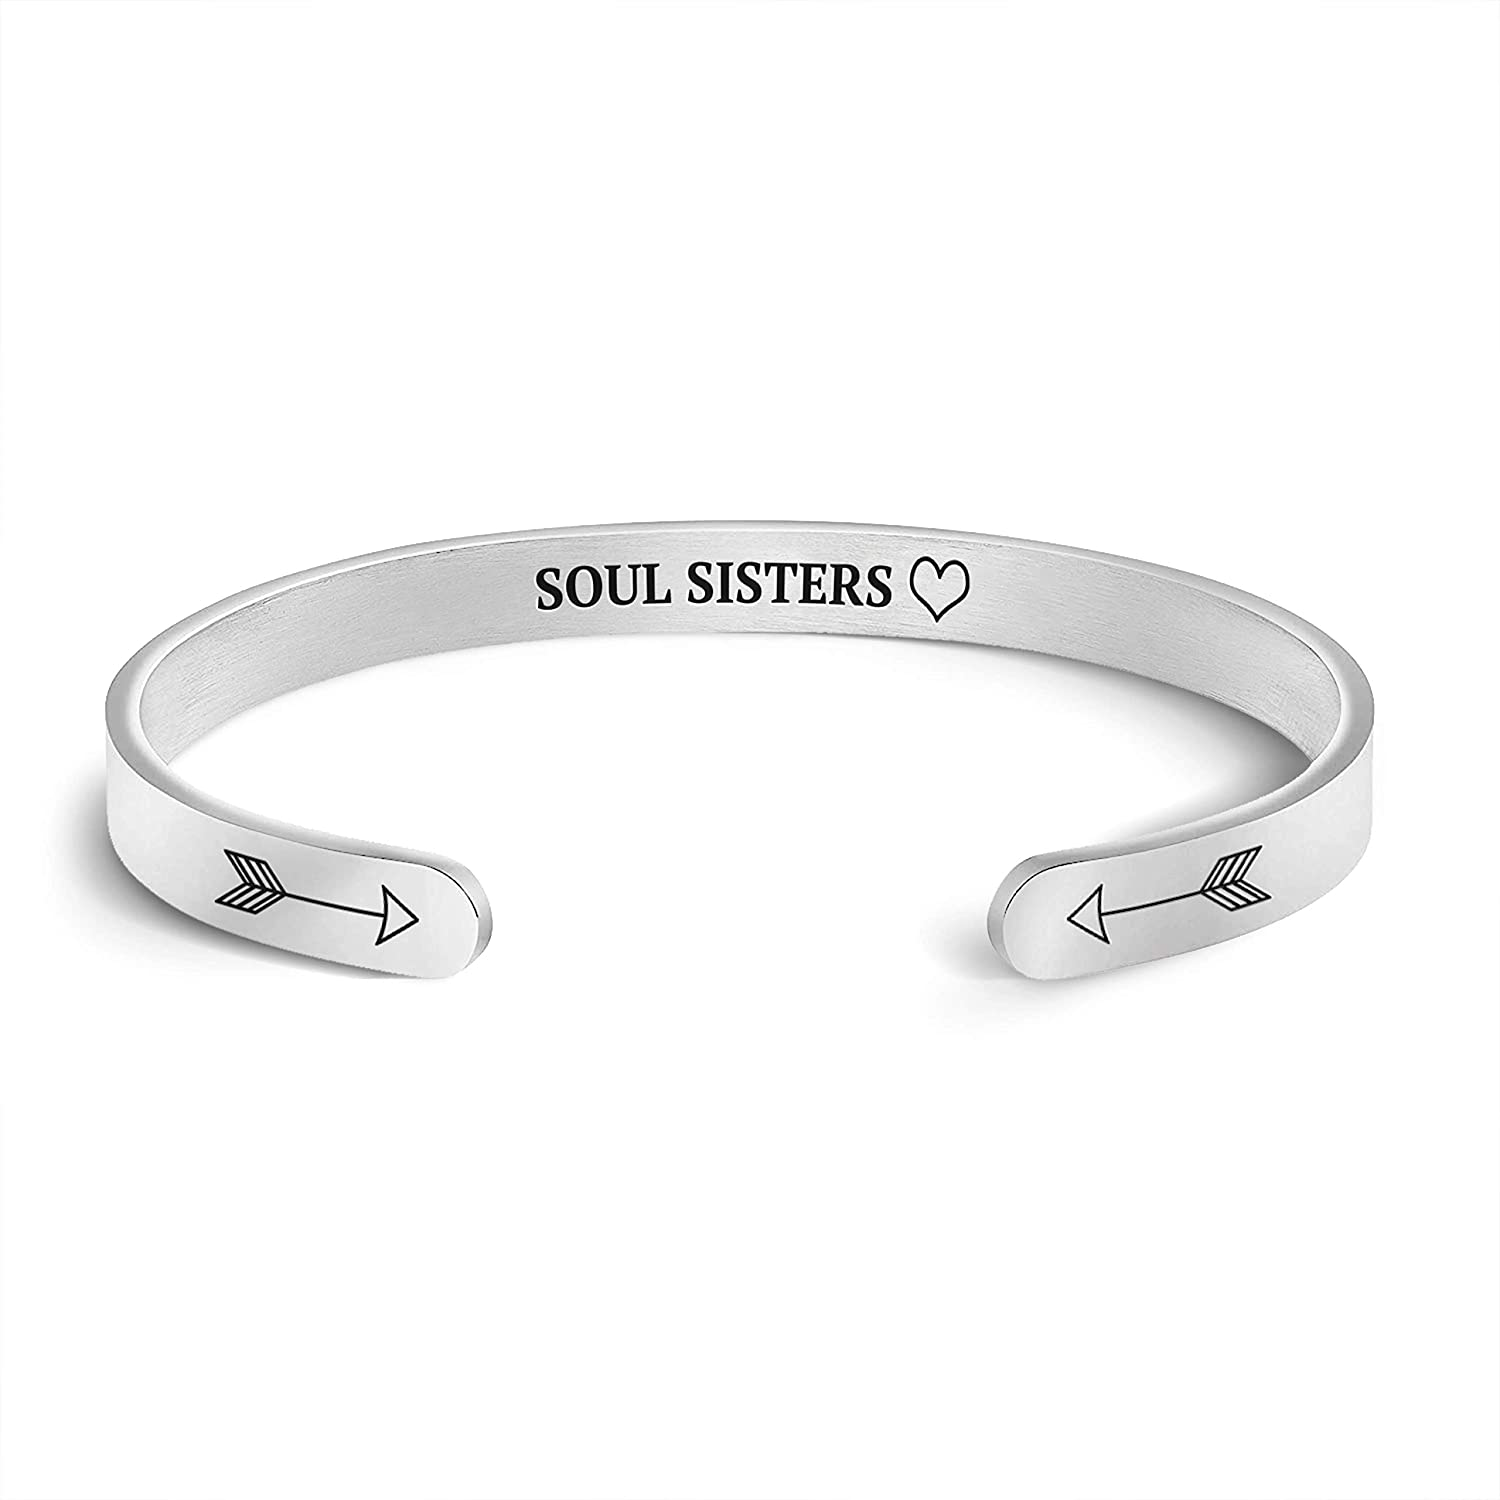 Direct sale of manufacturer Mint Lily Soul 2021 Sisters Cuff Ban Mantra Personalized Bracelet